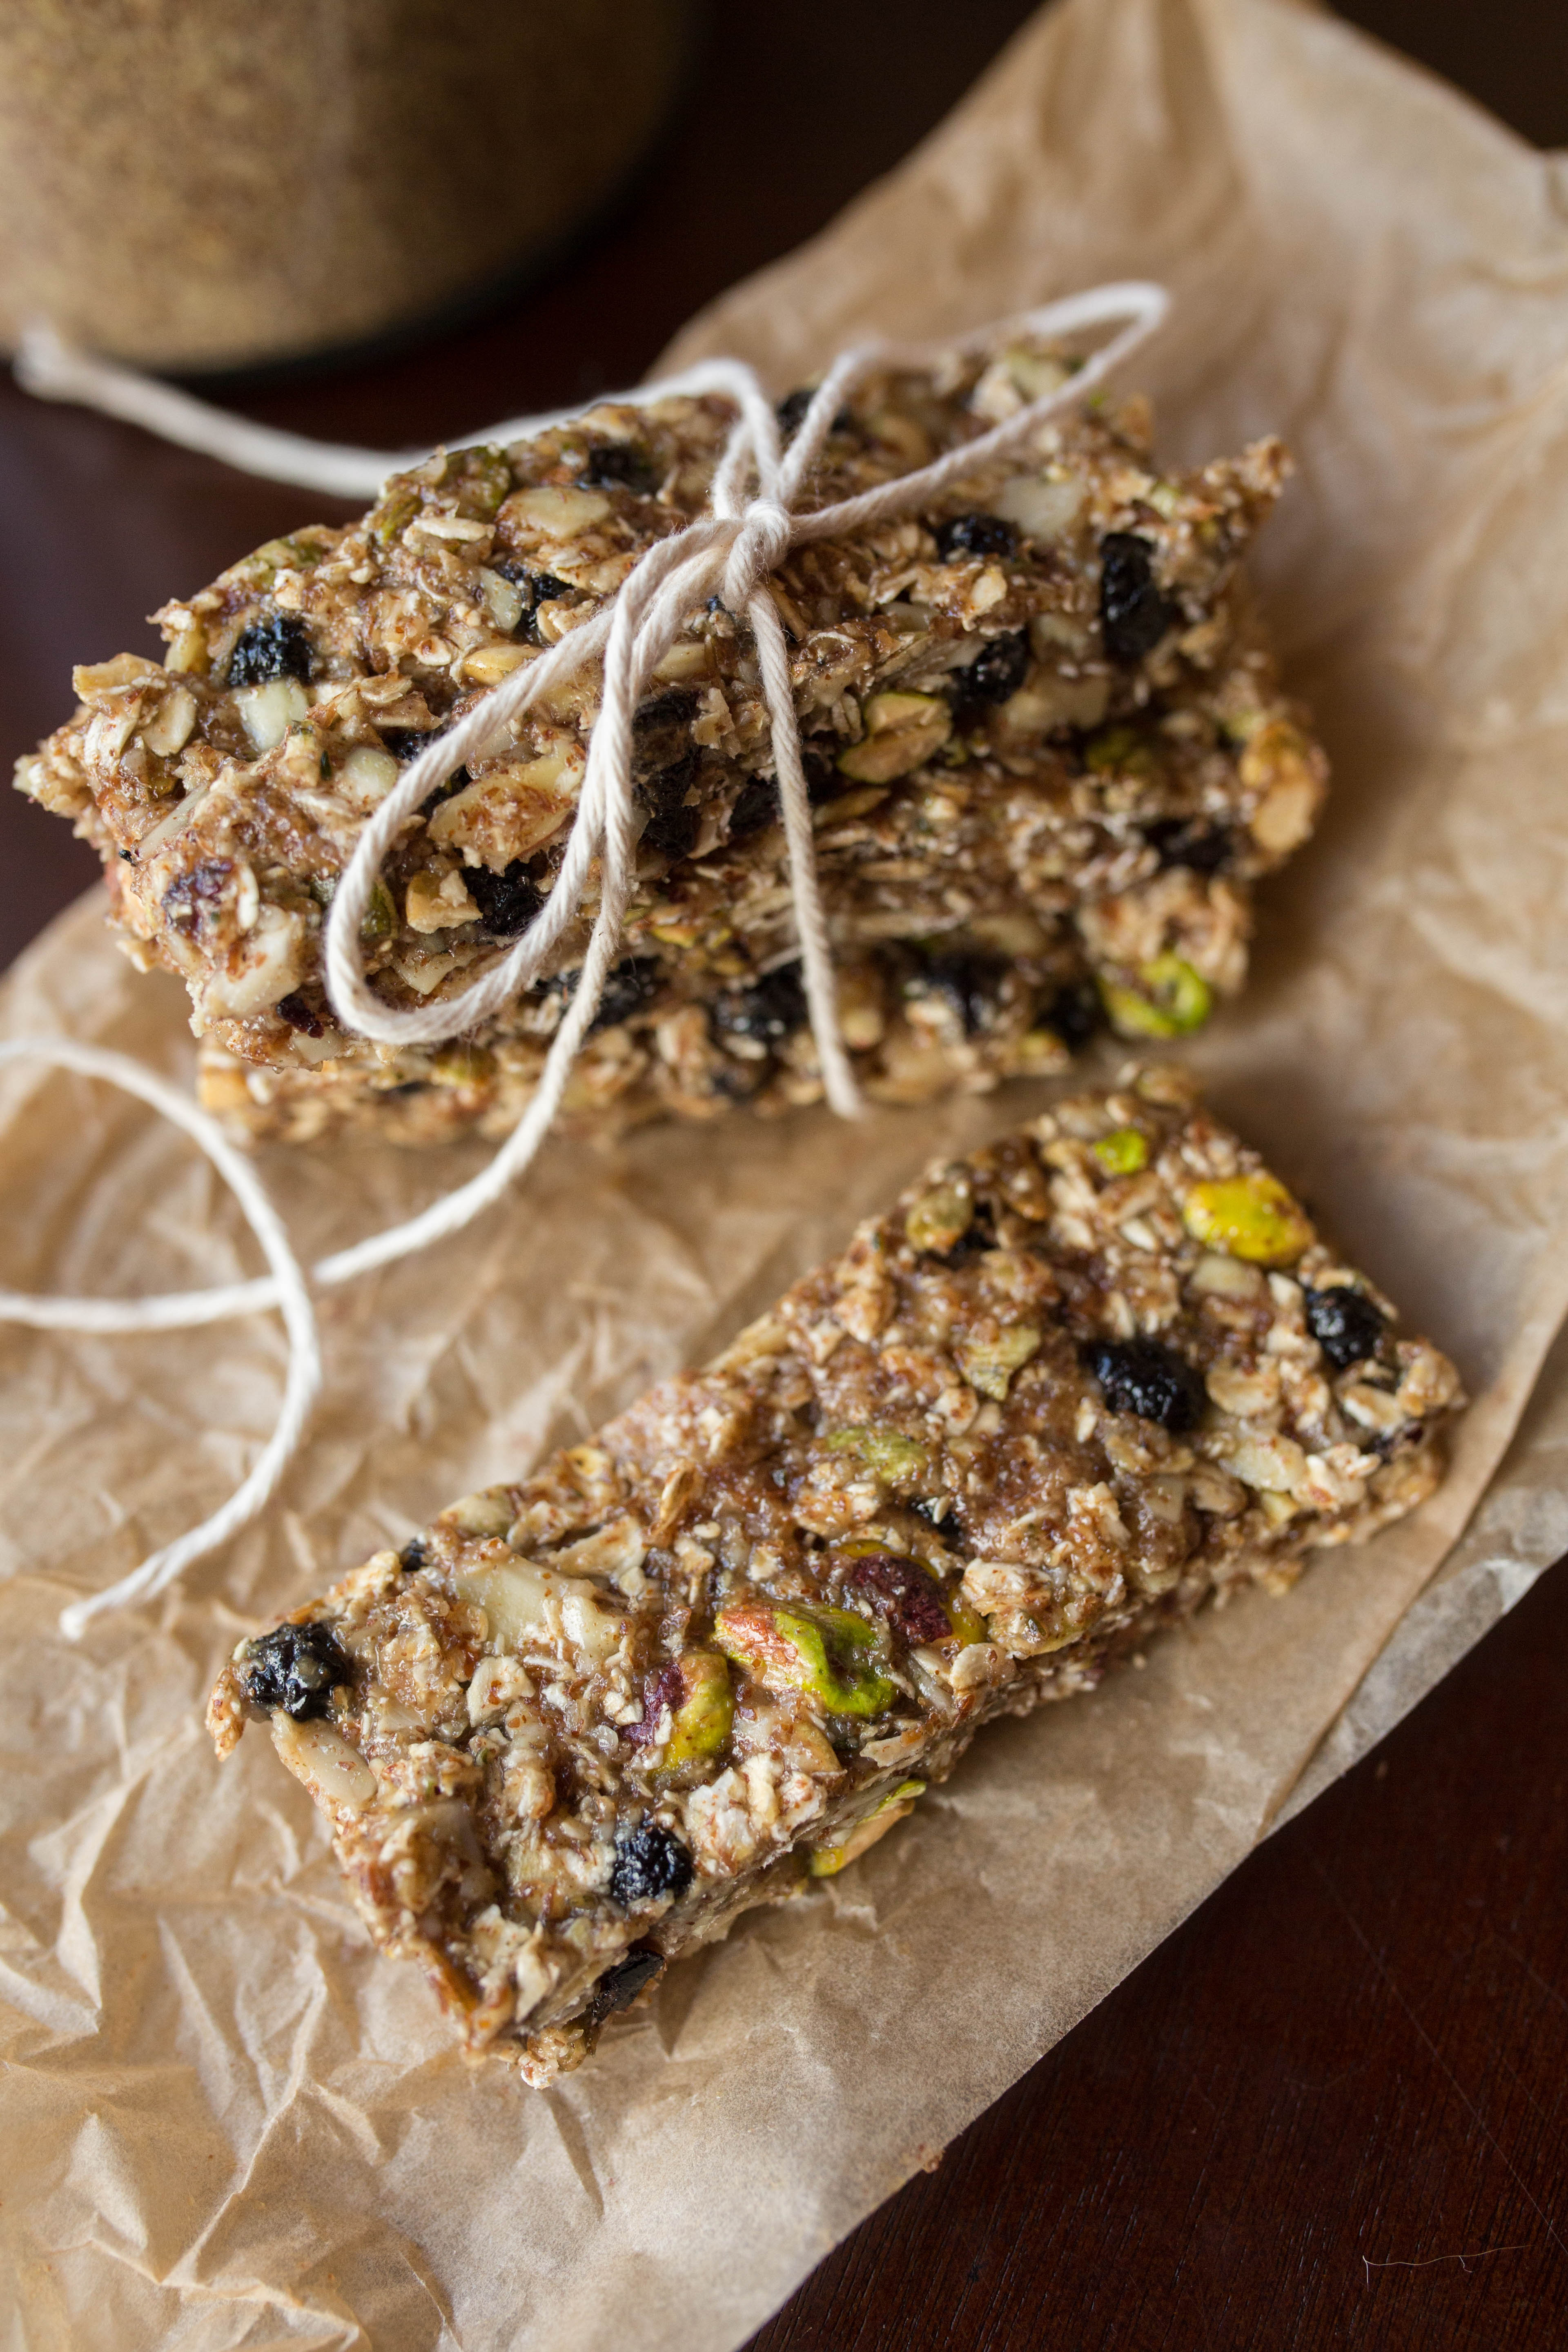 Blueberry Breakfast Bars – Vegan & Gluten Free